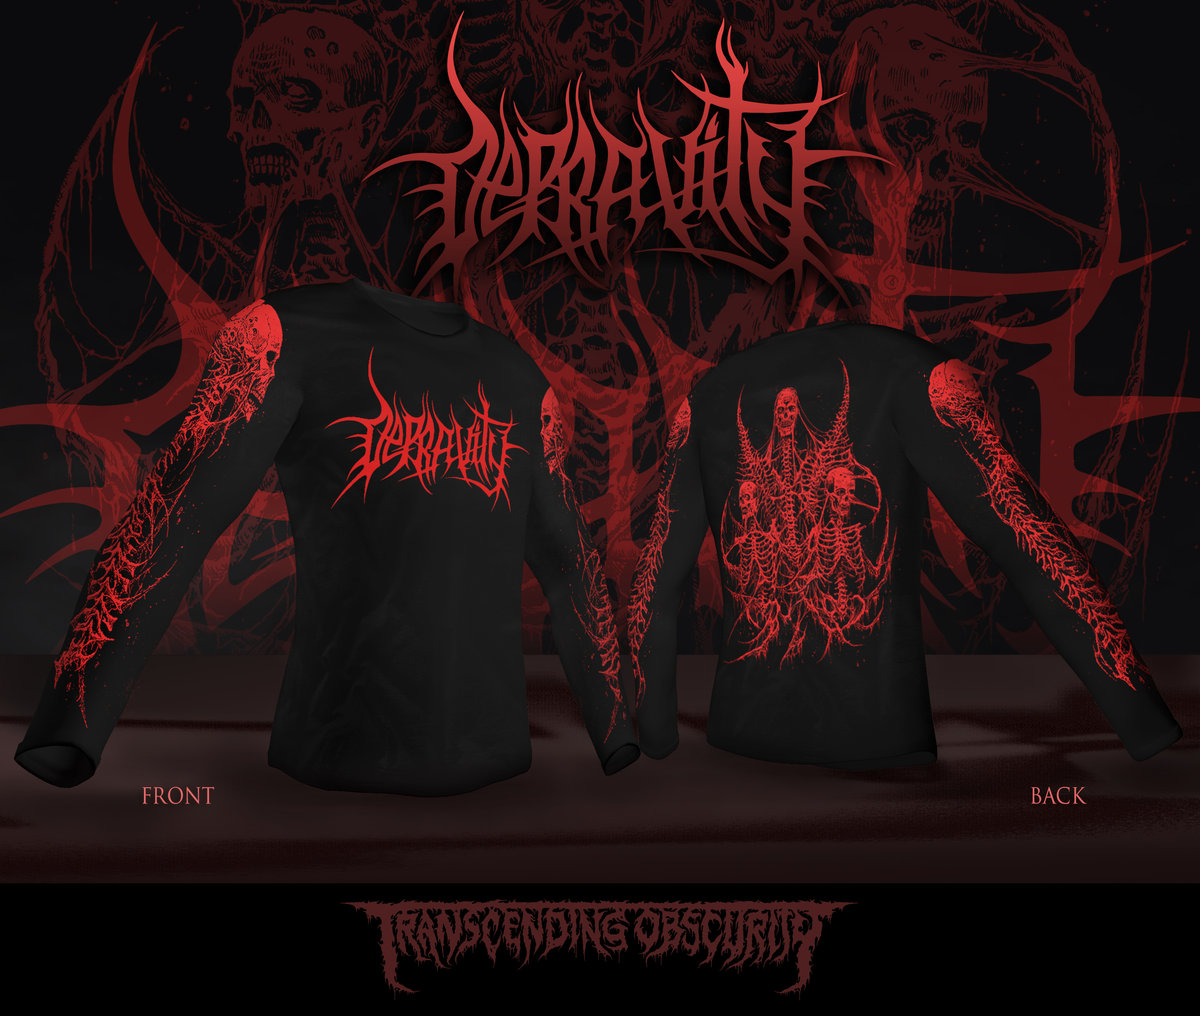 DEPRAVITY Long Sleeve T-shirt Design by Mark Riddick (Limited Edition)